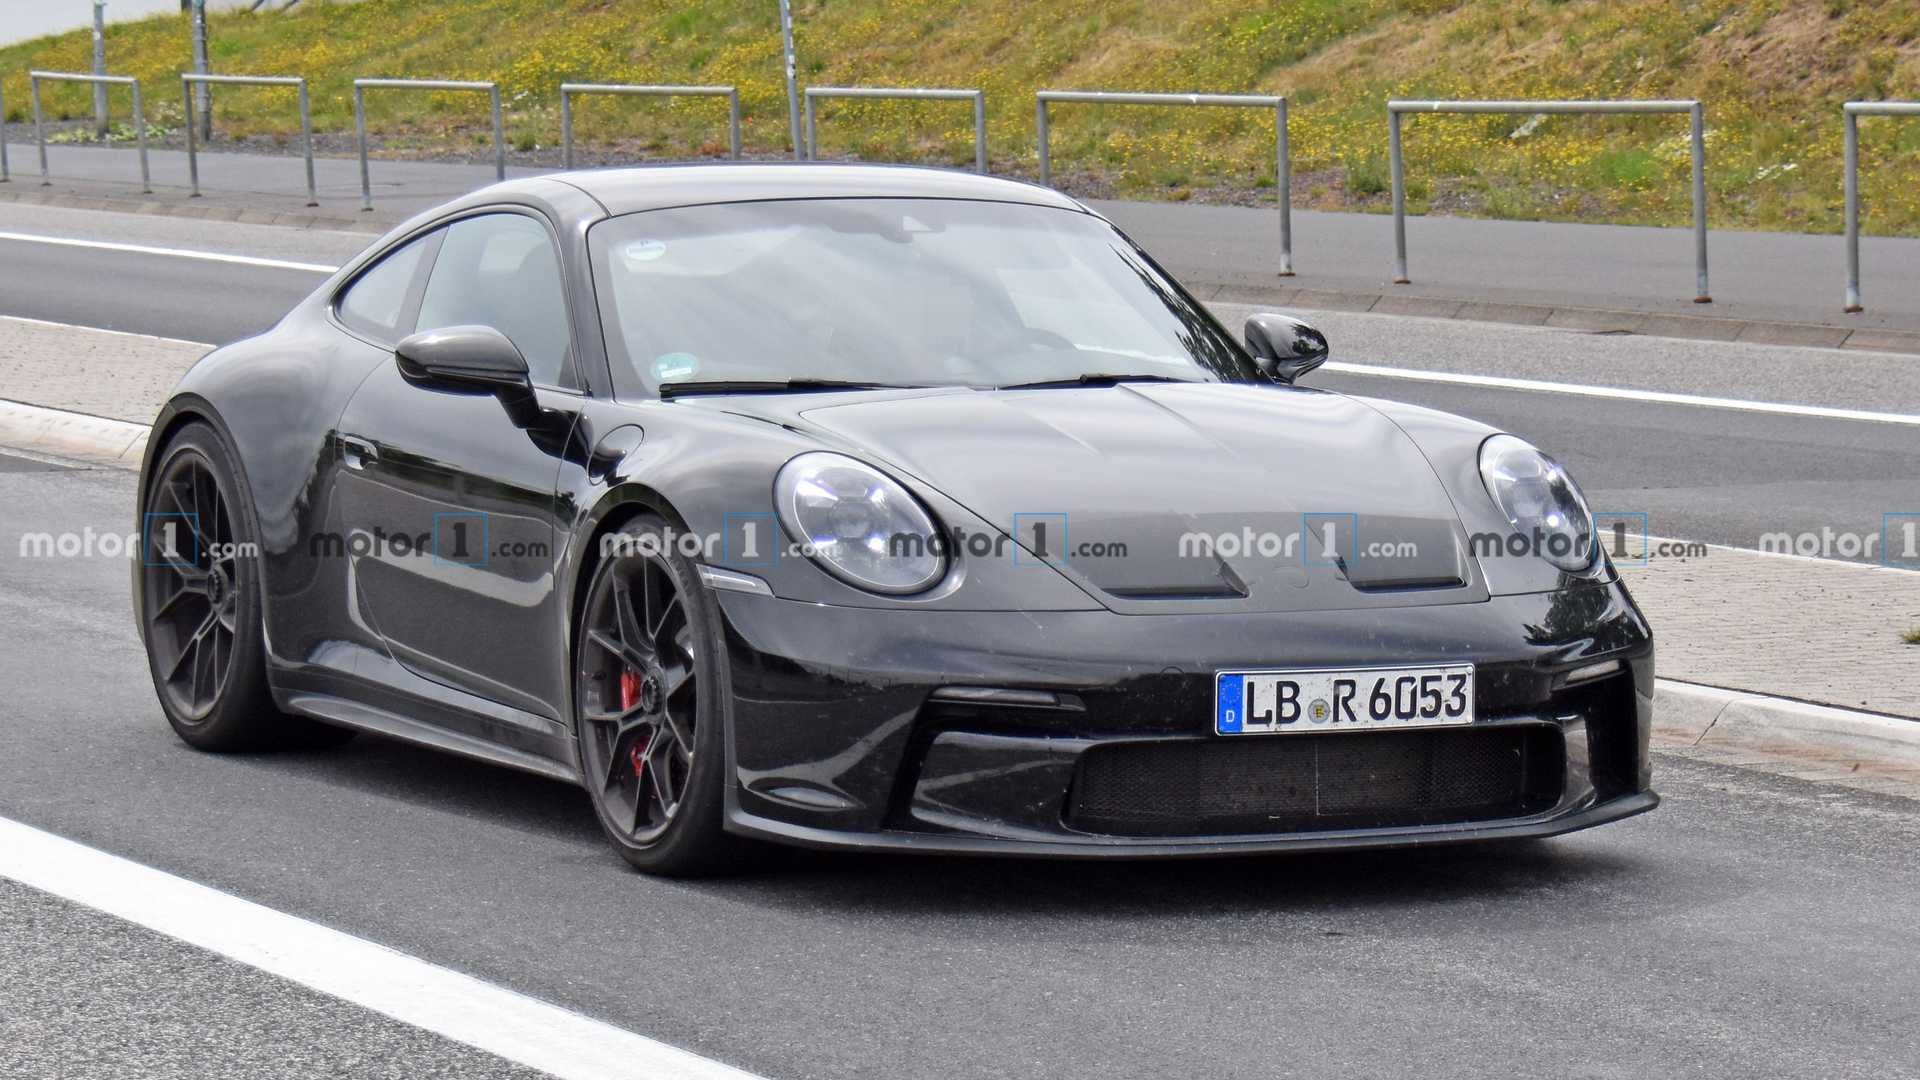 Porsche 911 GT3 Touring Spied Performing Final Testing Rounds